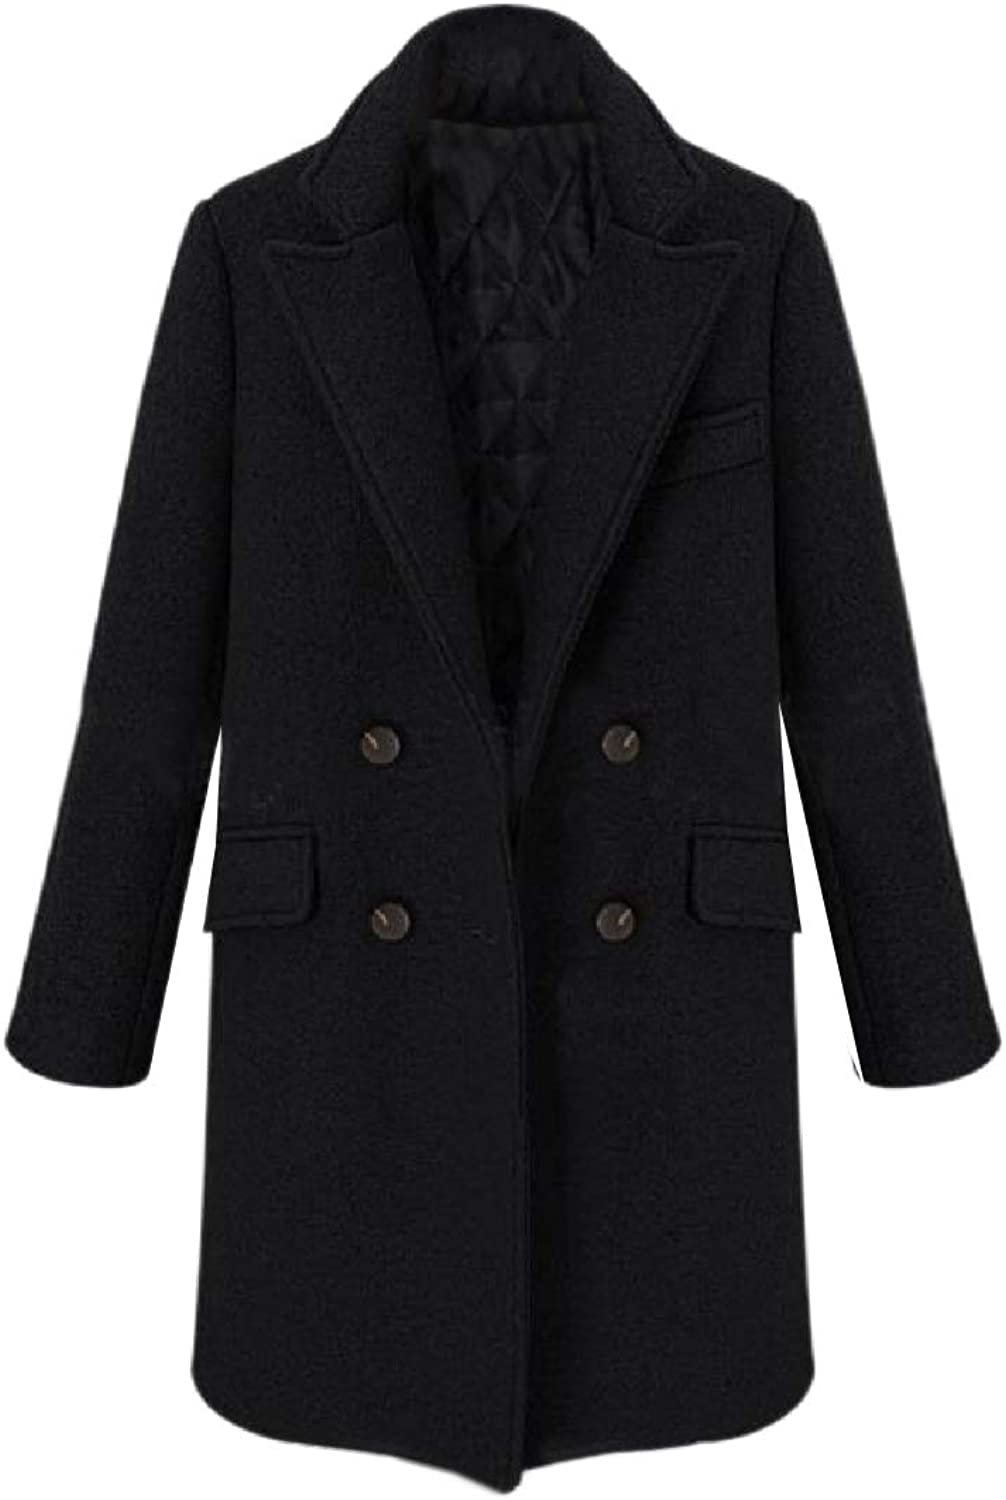 Doanpa Women's Double Breasted Classics Warm Wool Blended Worsted Coat